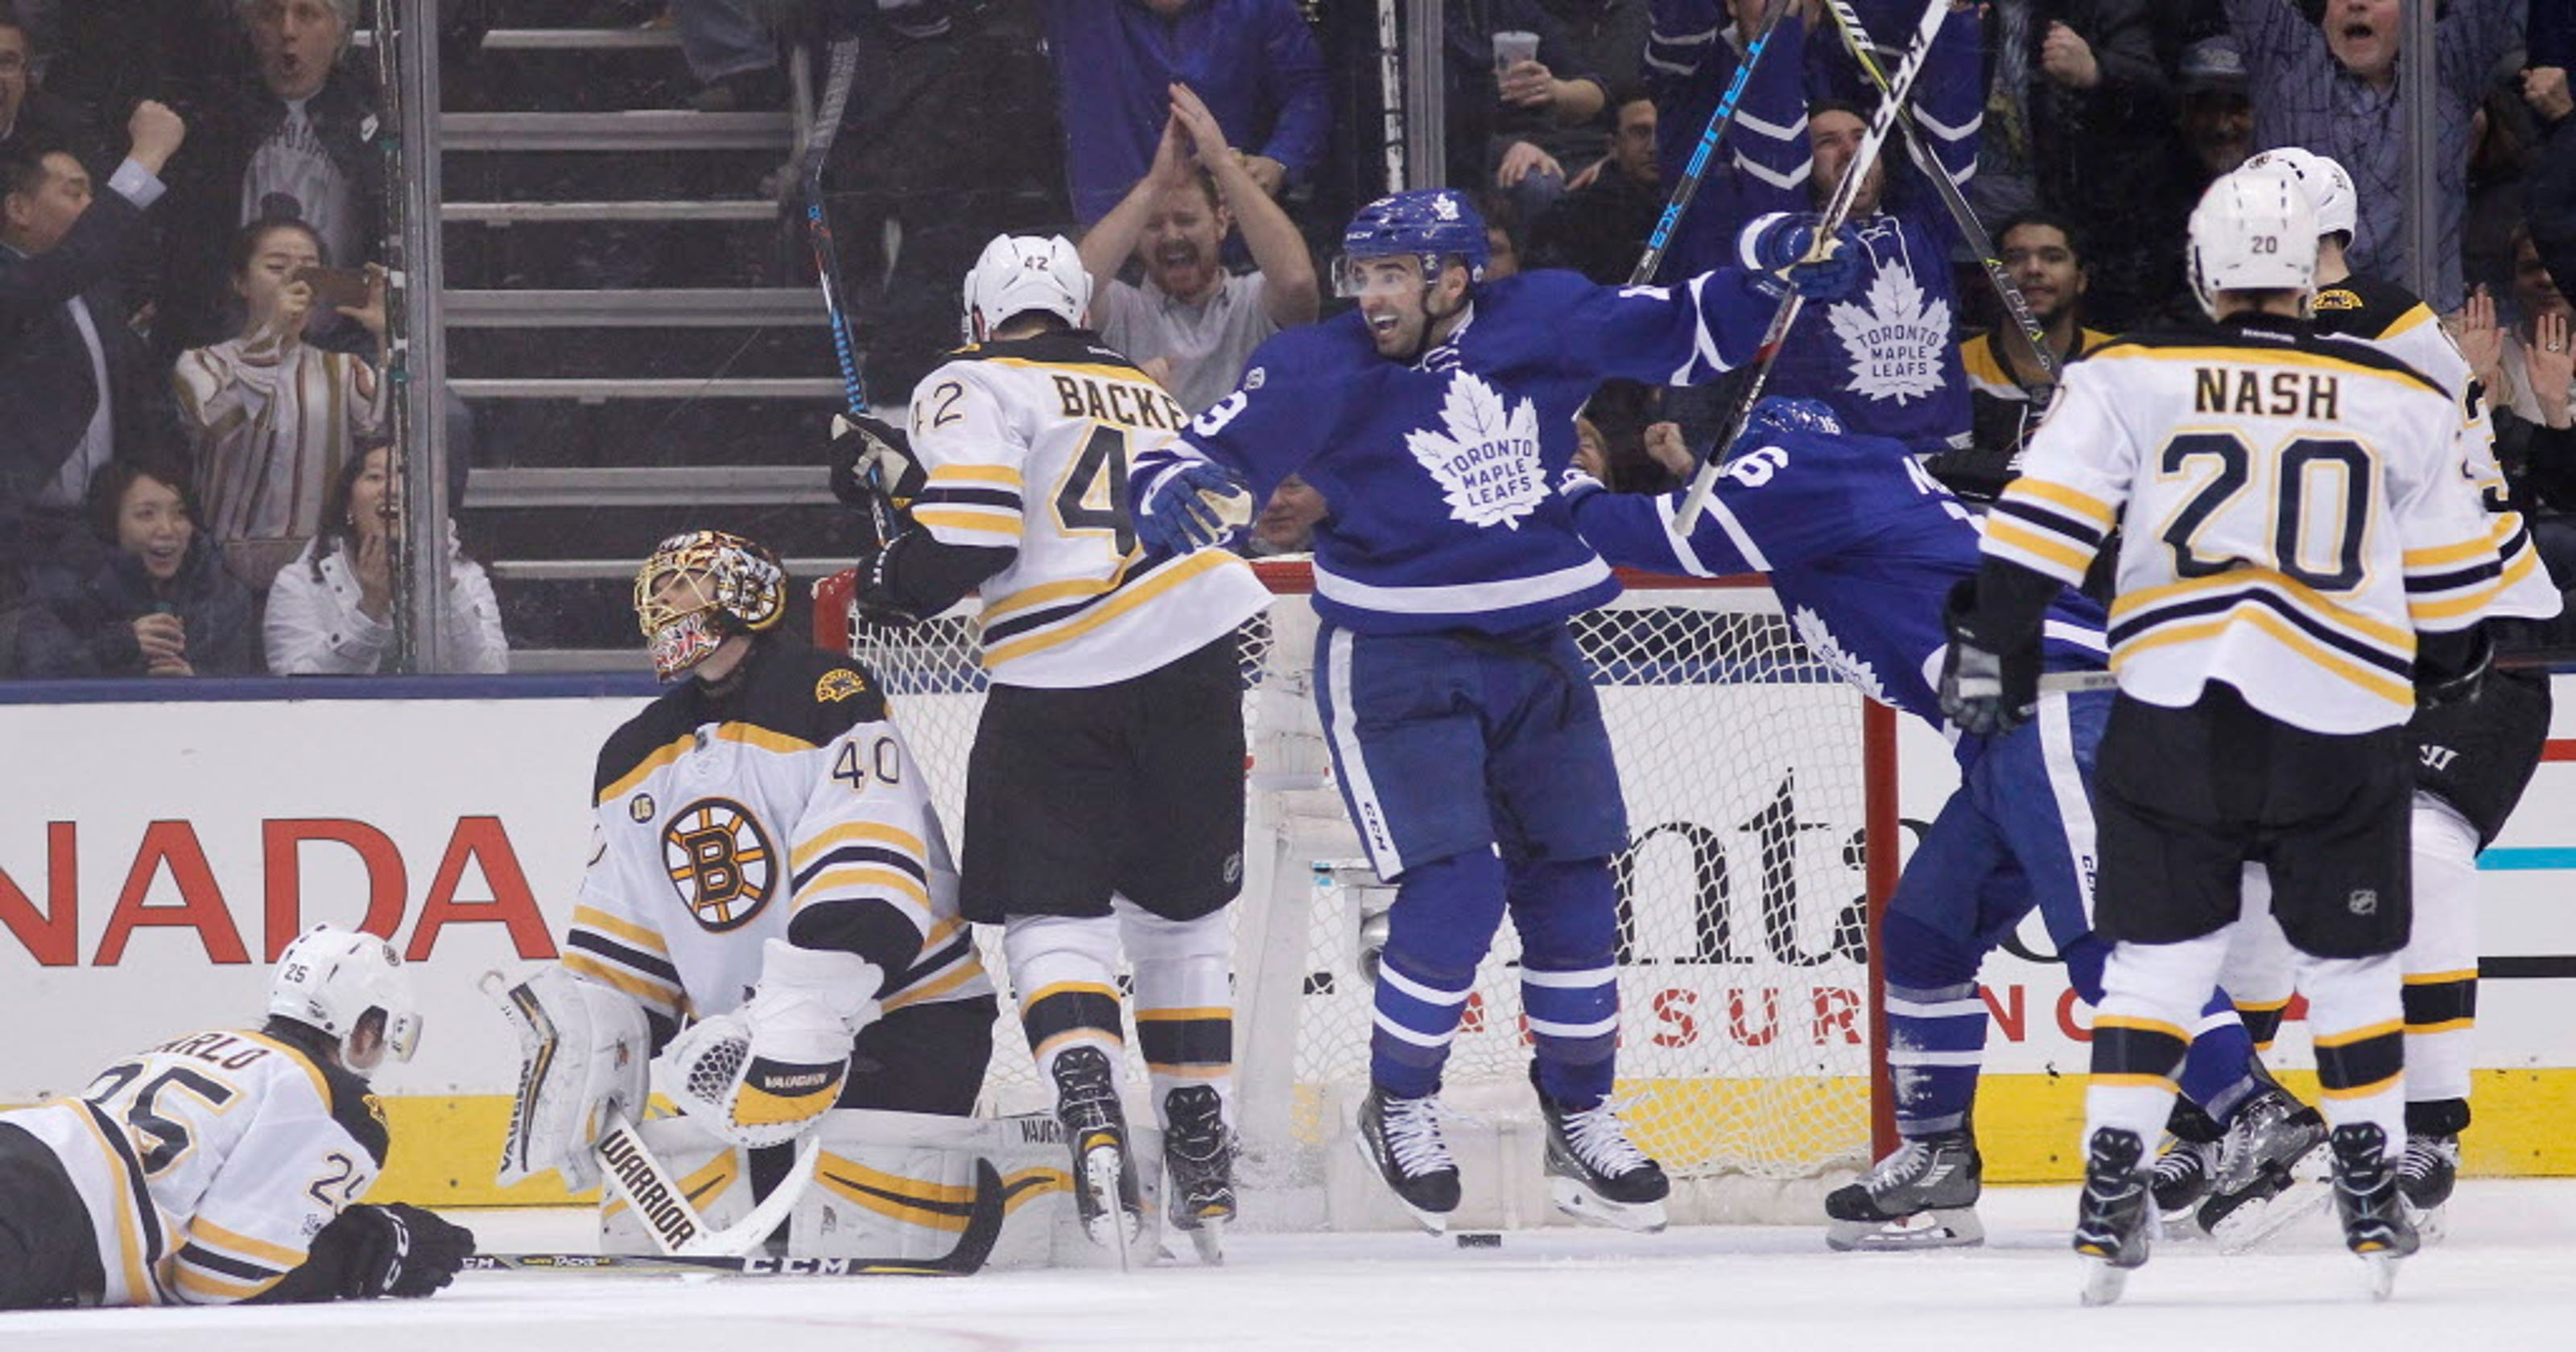 bcc125362 Maple Leafs complete rare season sweep of Bruins